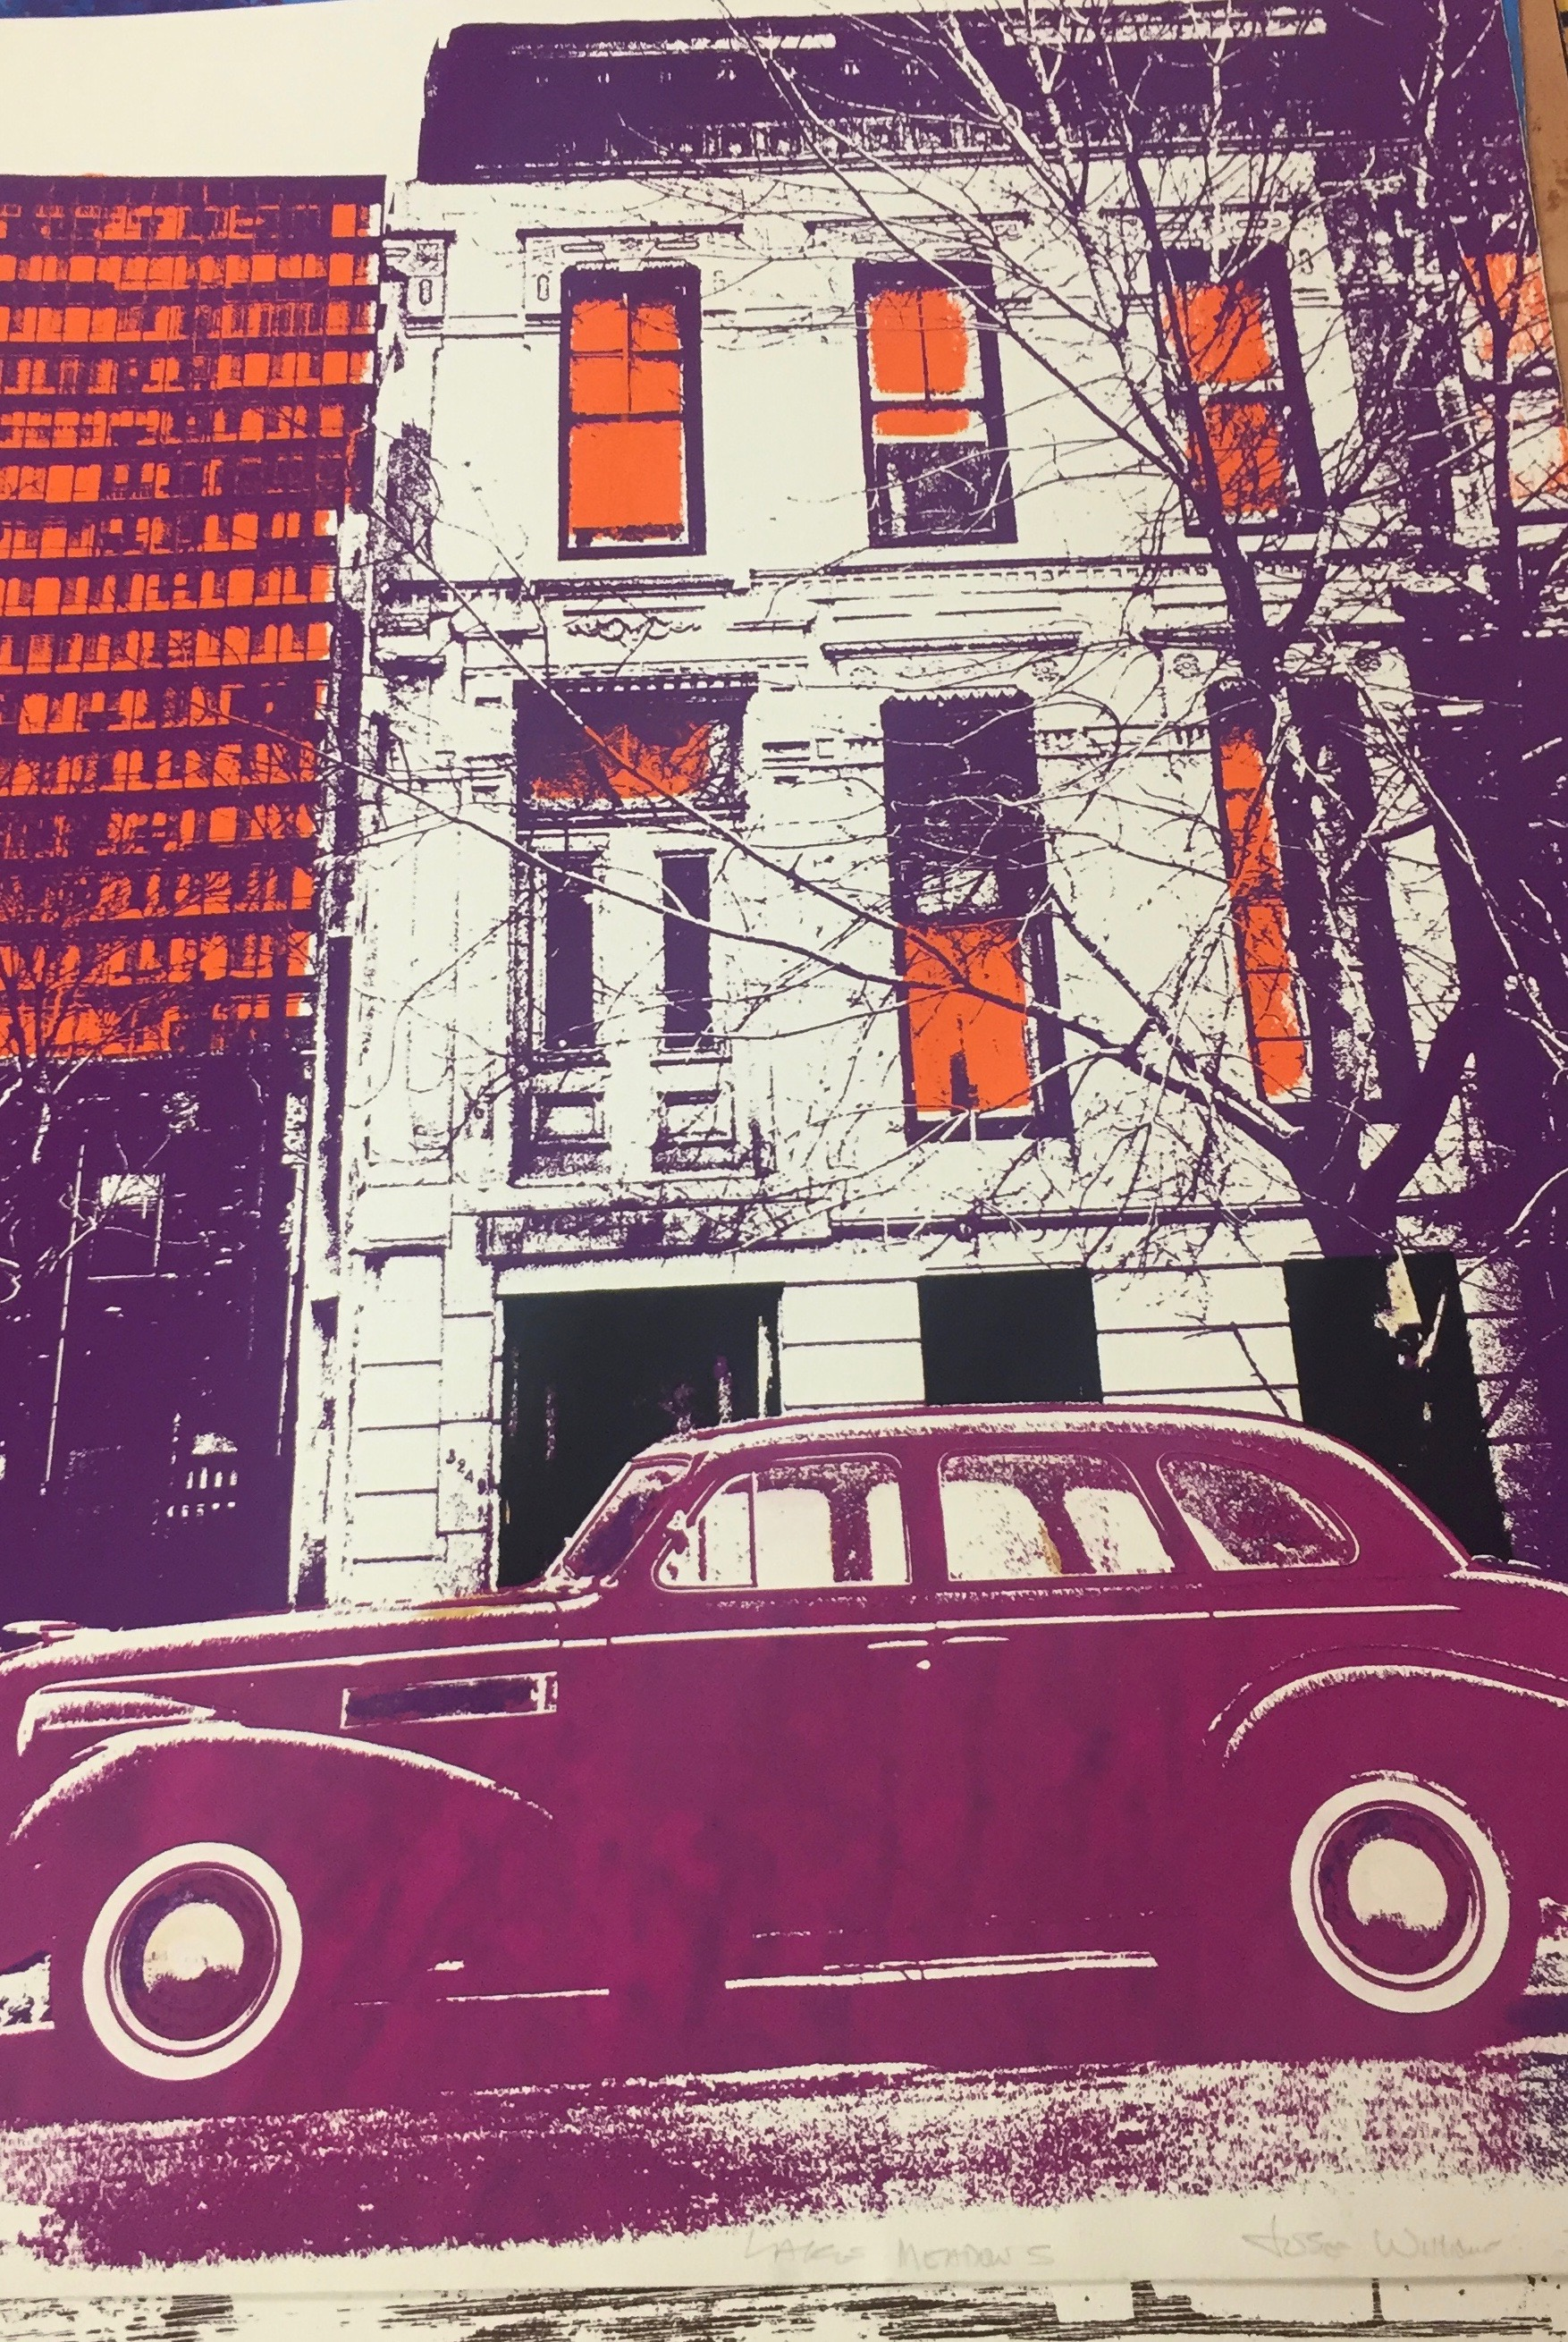 """Jose Williams. """"Lake Meadows,"""" 1975. An old-fashioned coupe parked in front of a tall apartment building, portrayed in whites, oranges, and purples. Illinois Institute of Technology, Paul Galvin Library, Special Collections ."""